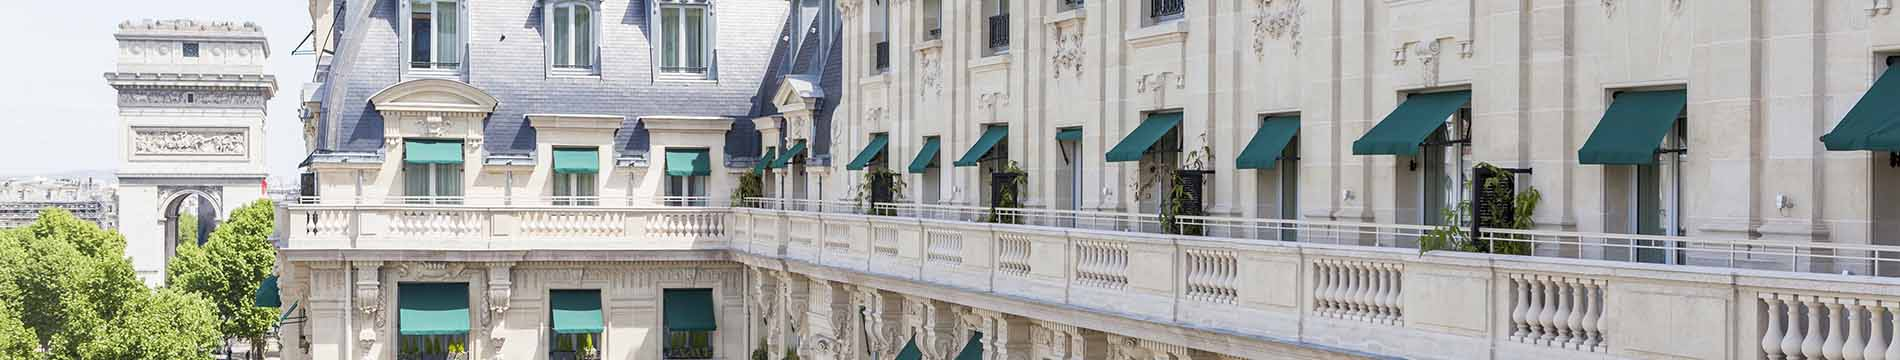 Dickson fabrics fitted to folding-arm awnings on a Paris building